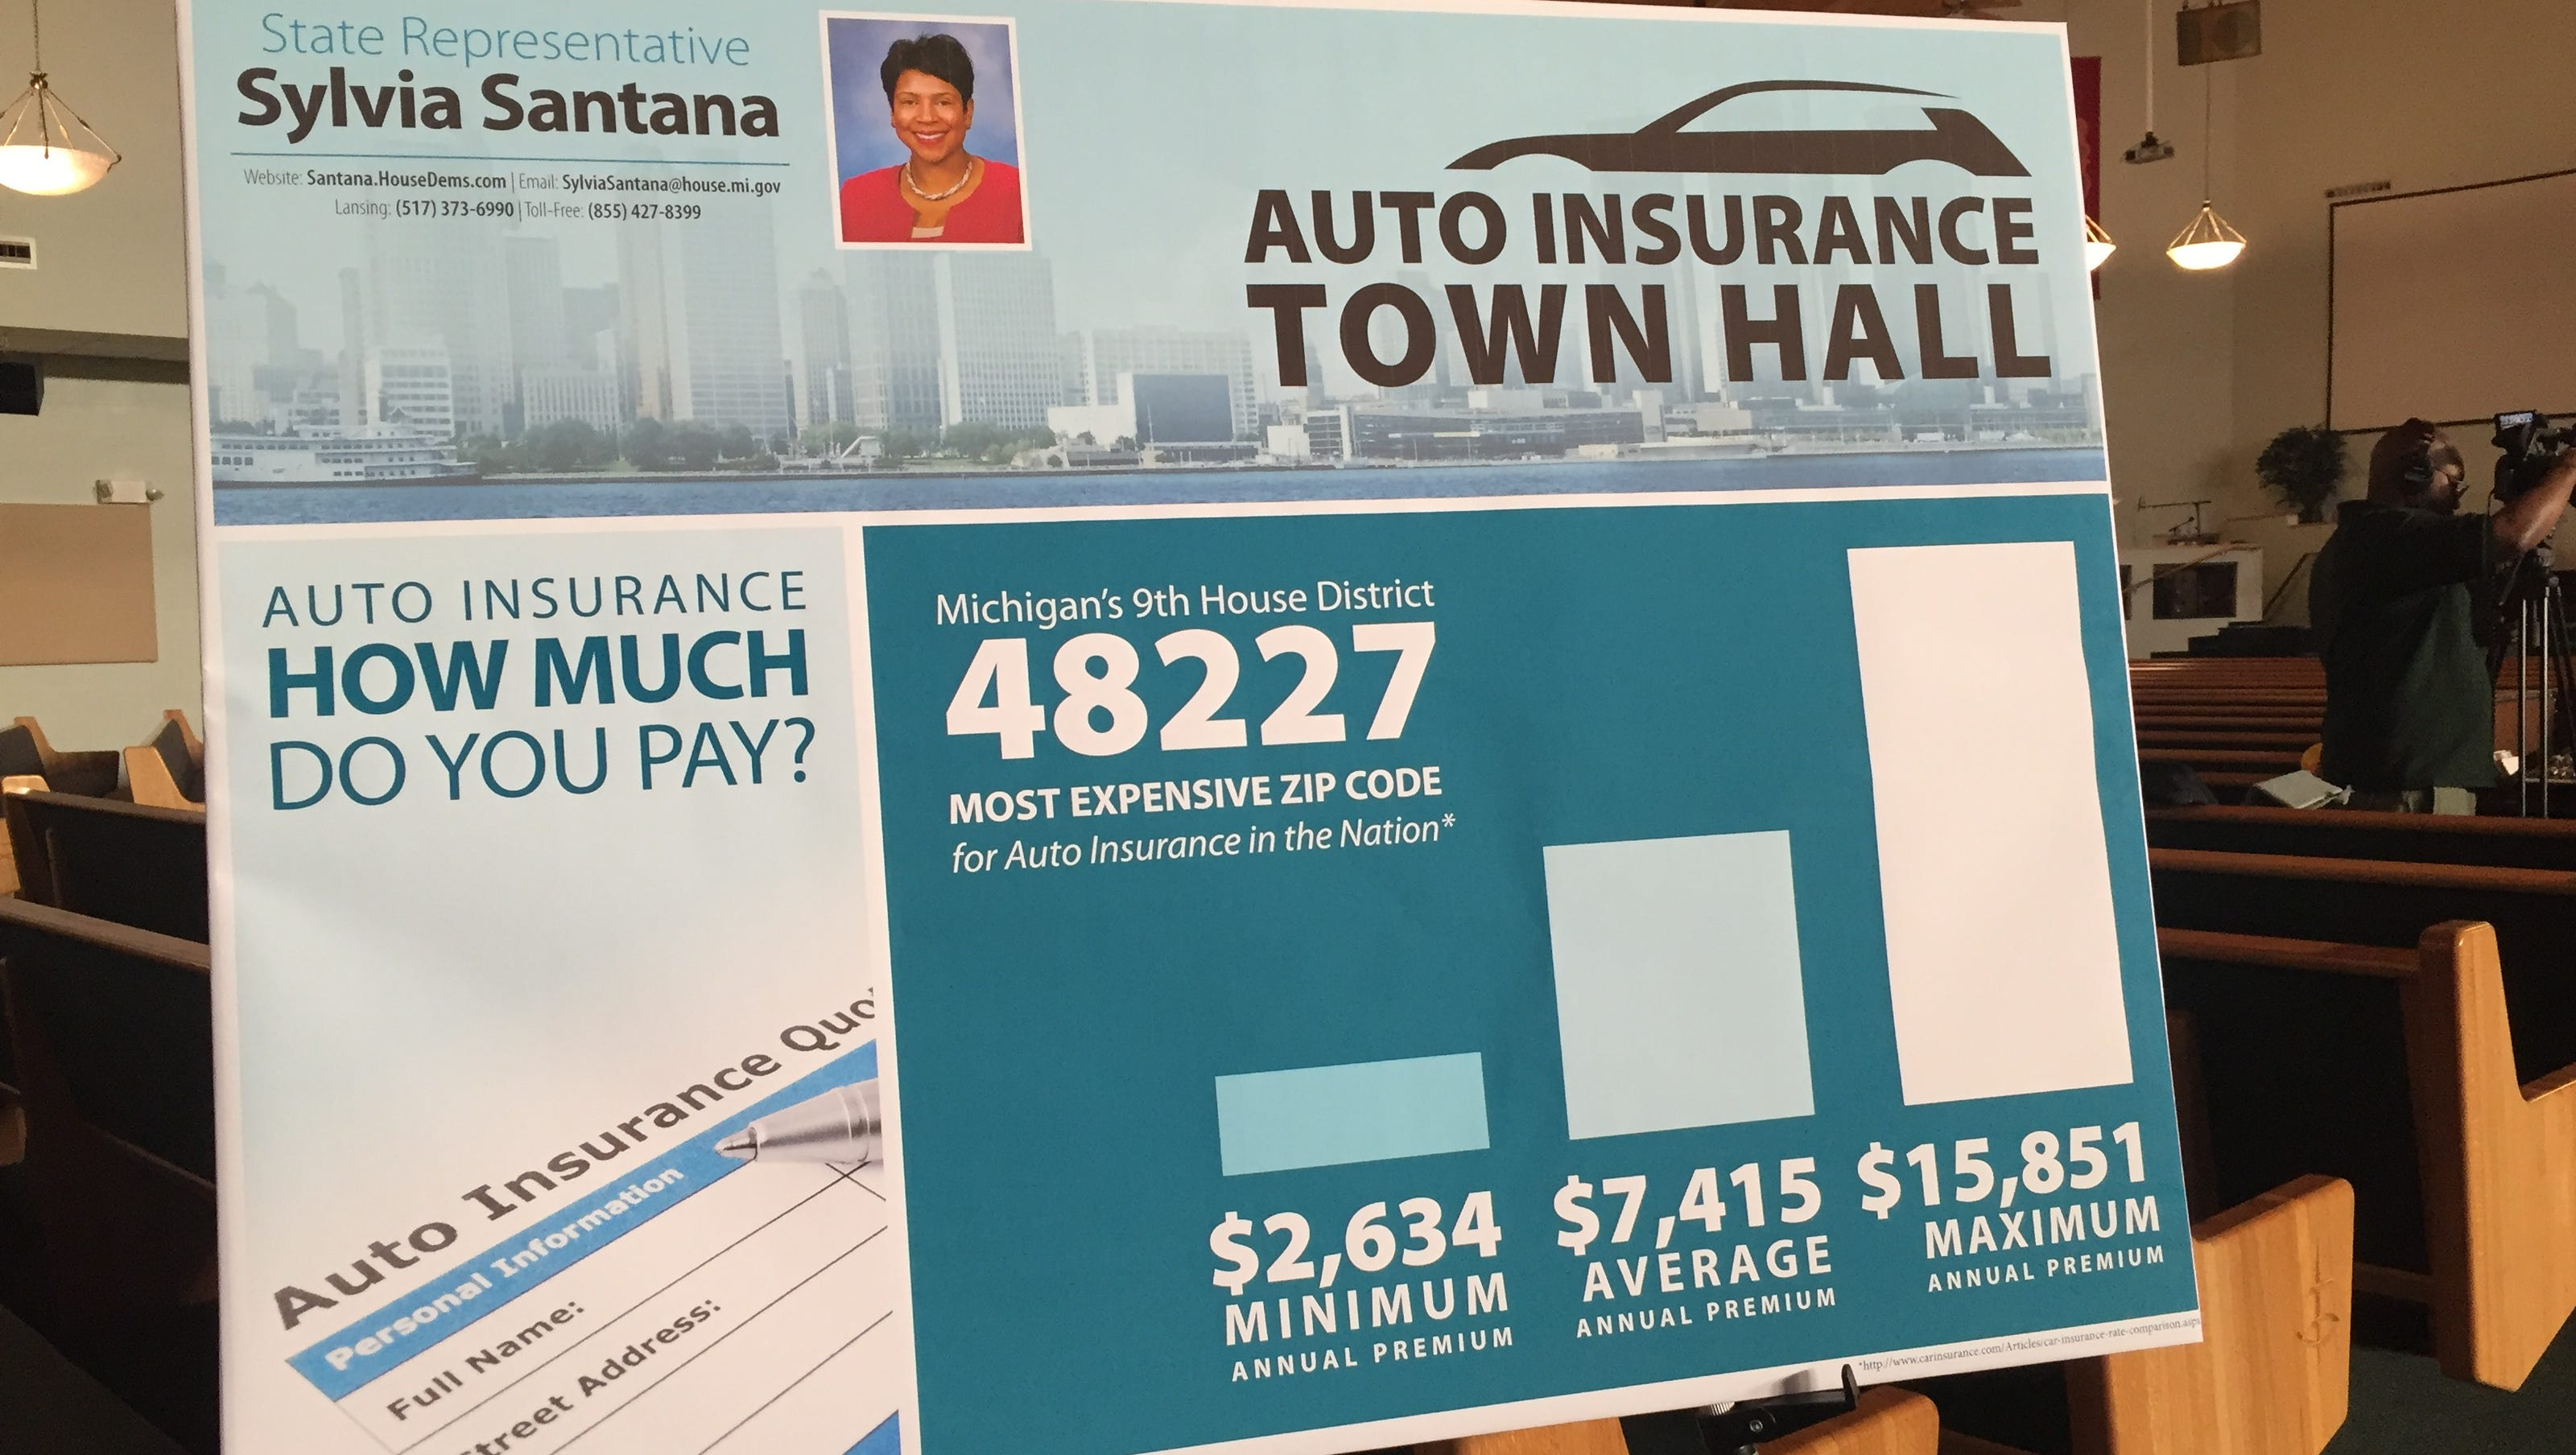 Significant Auto Insurance Relief Part Of Michigan House City Of